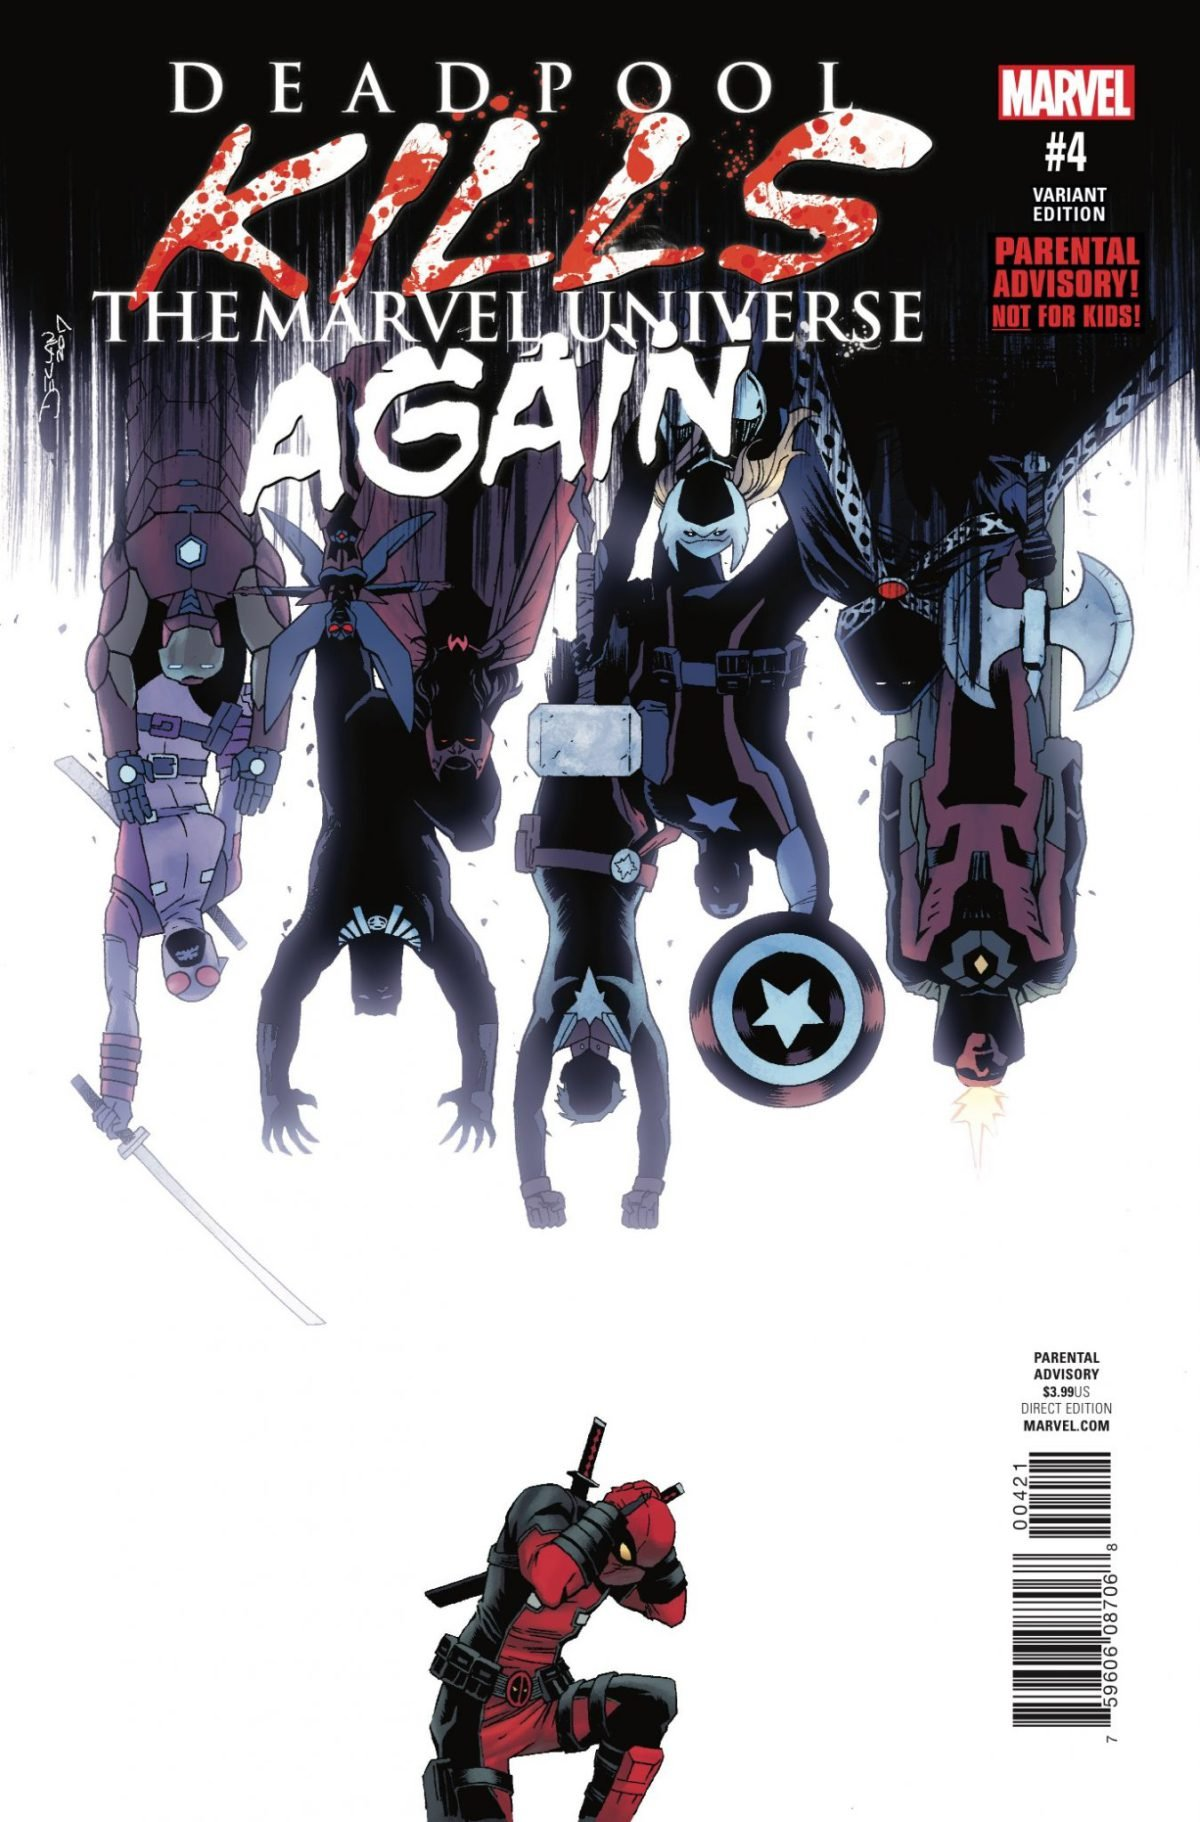 Download Deadpool Kills the Marvel Universe Again (Issue #4 -Variant Cover by Declan Shalvey) pdf